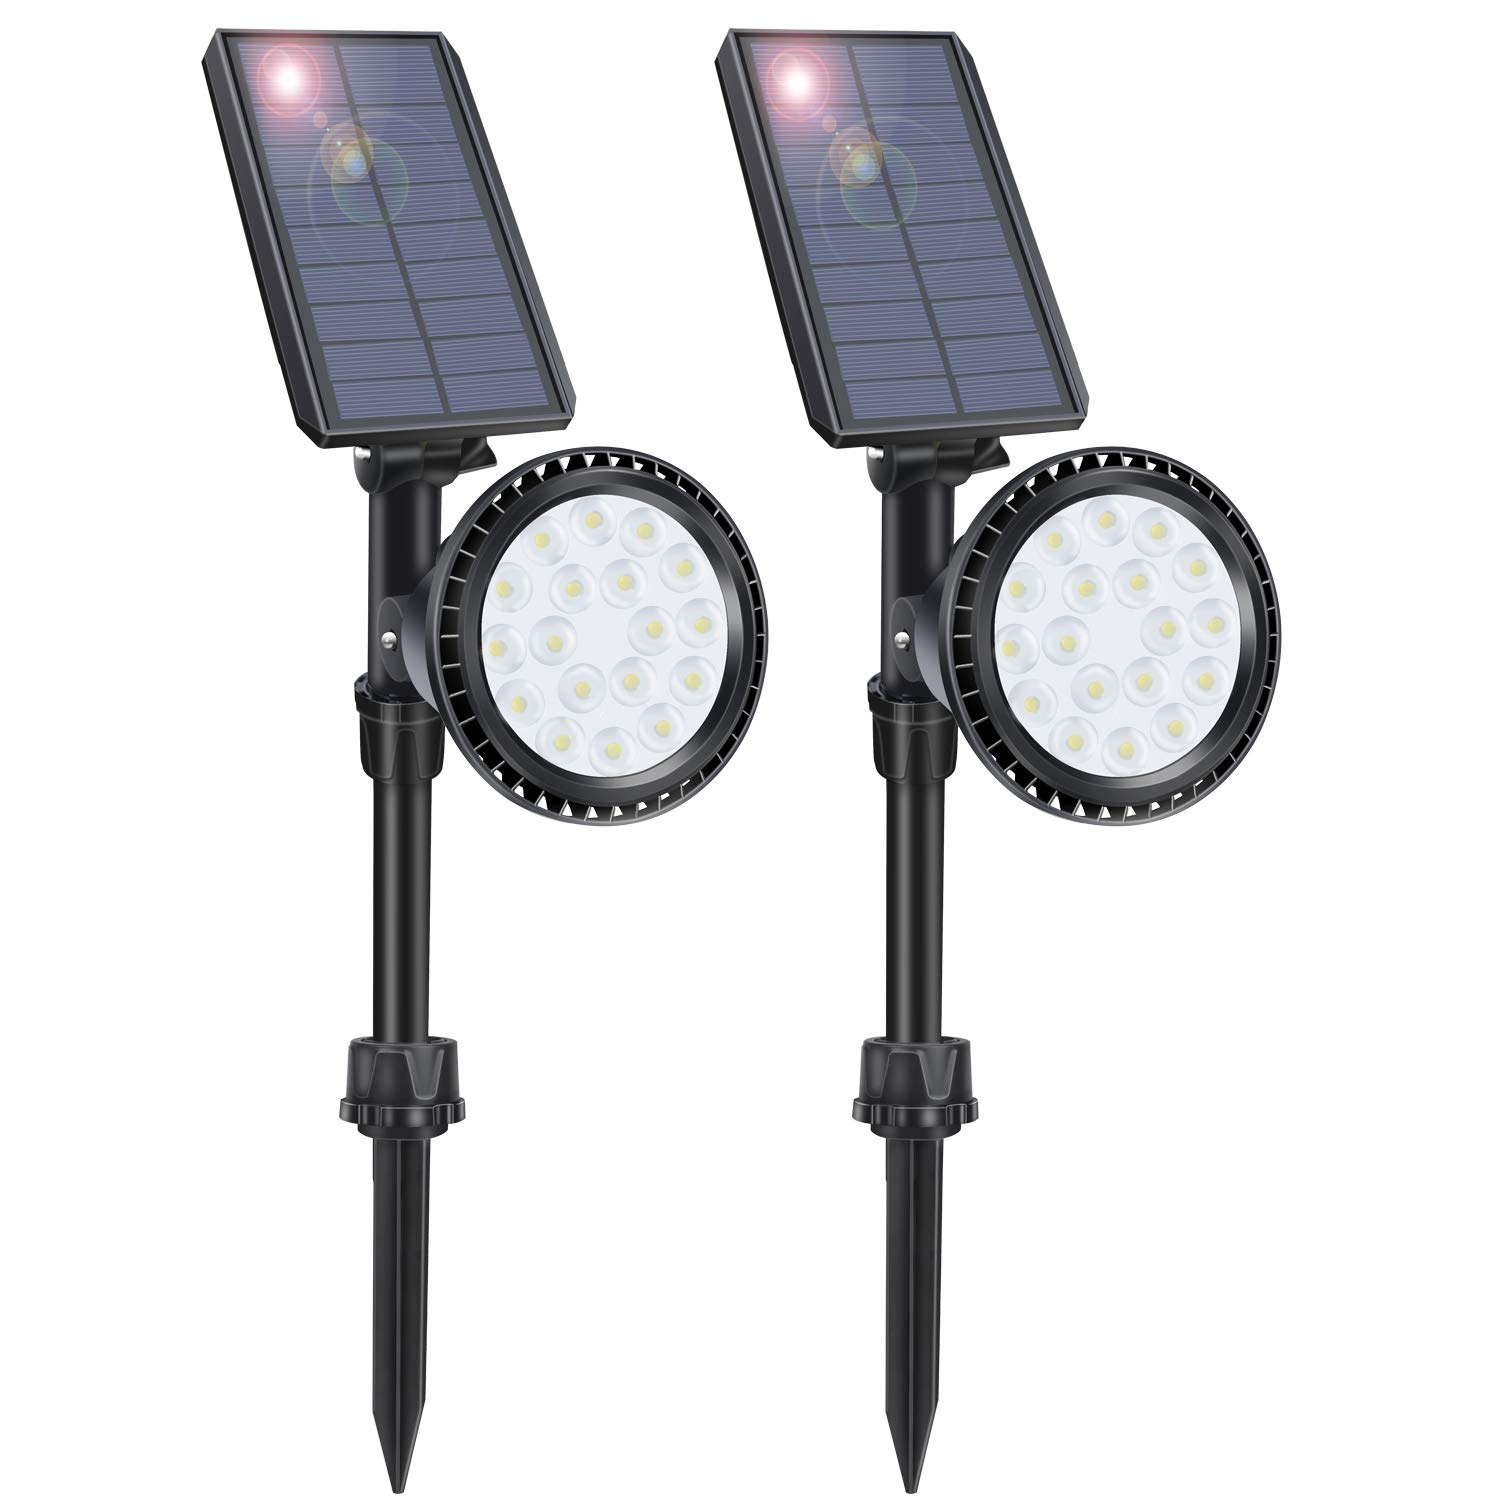 LITSPOT Solar Landscape Lights, 18 LED Solar Spotlights Outdoor Waterproof Solar Spot Lights Outdoor Dusk to Dawn for Trees House Yard Garden Driveway Flag Pole Pool Walkway 2 Pack (Cold White)